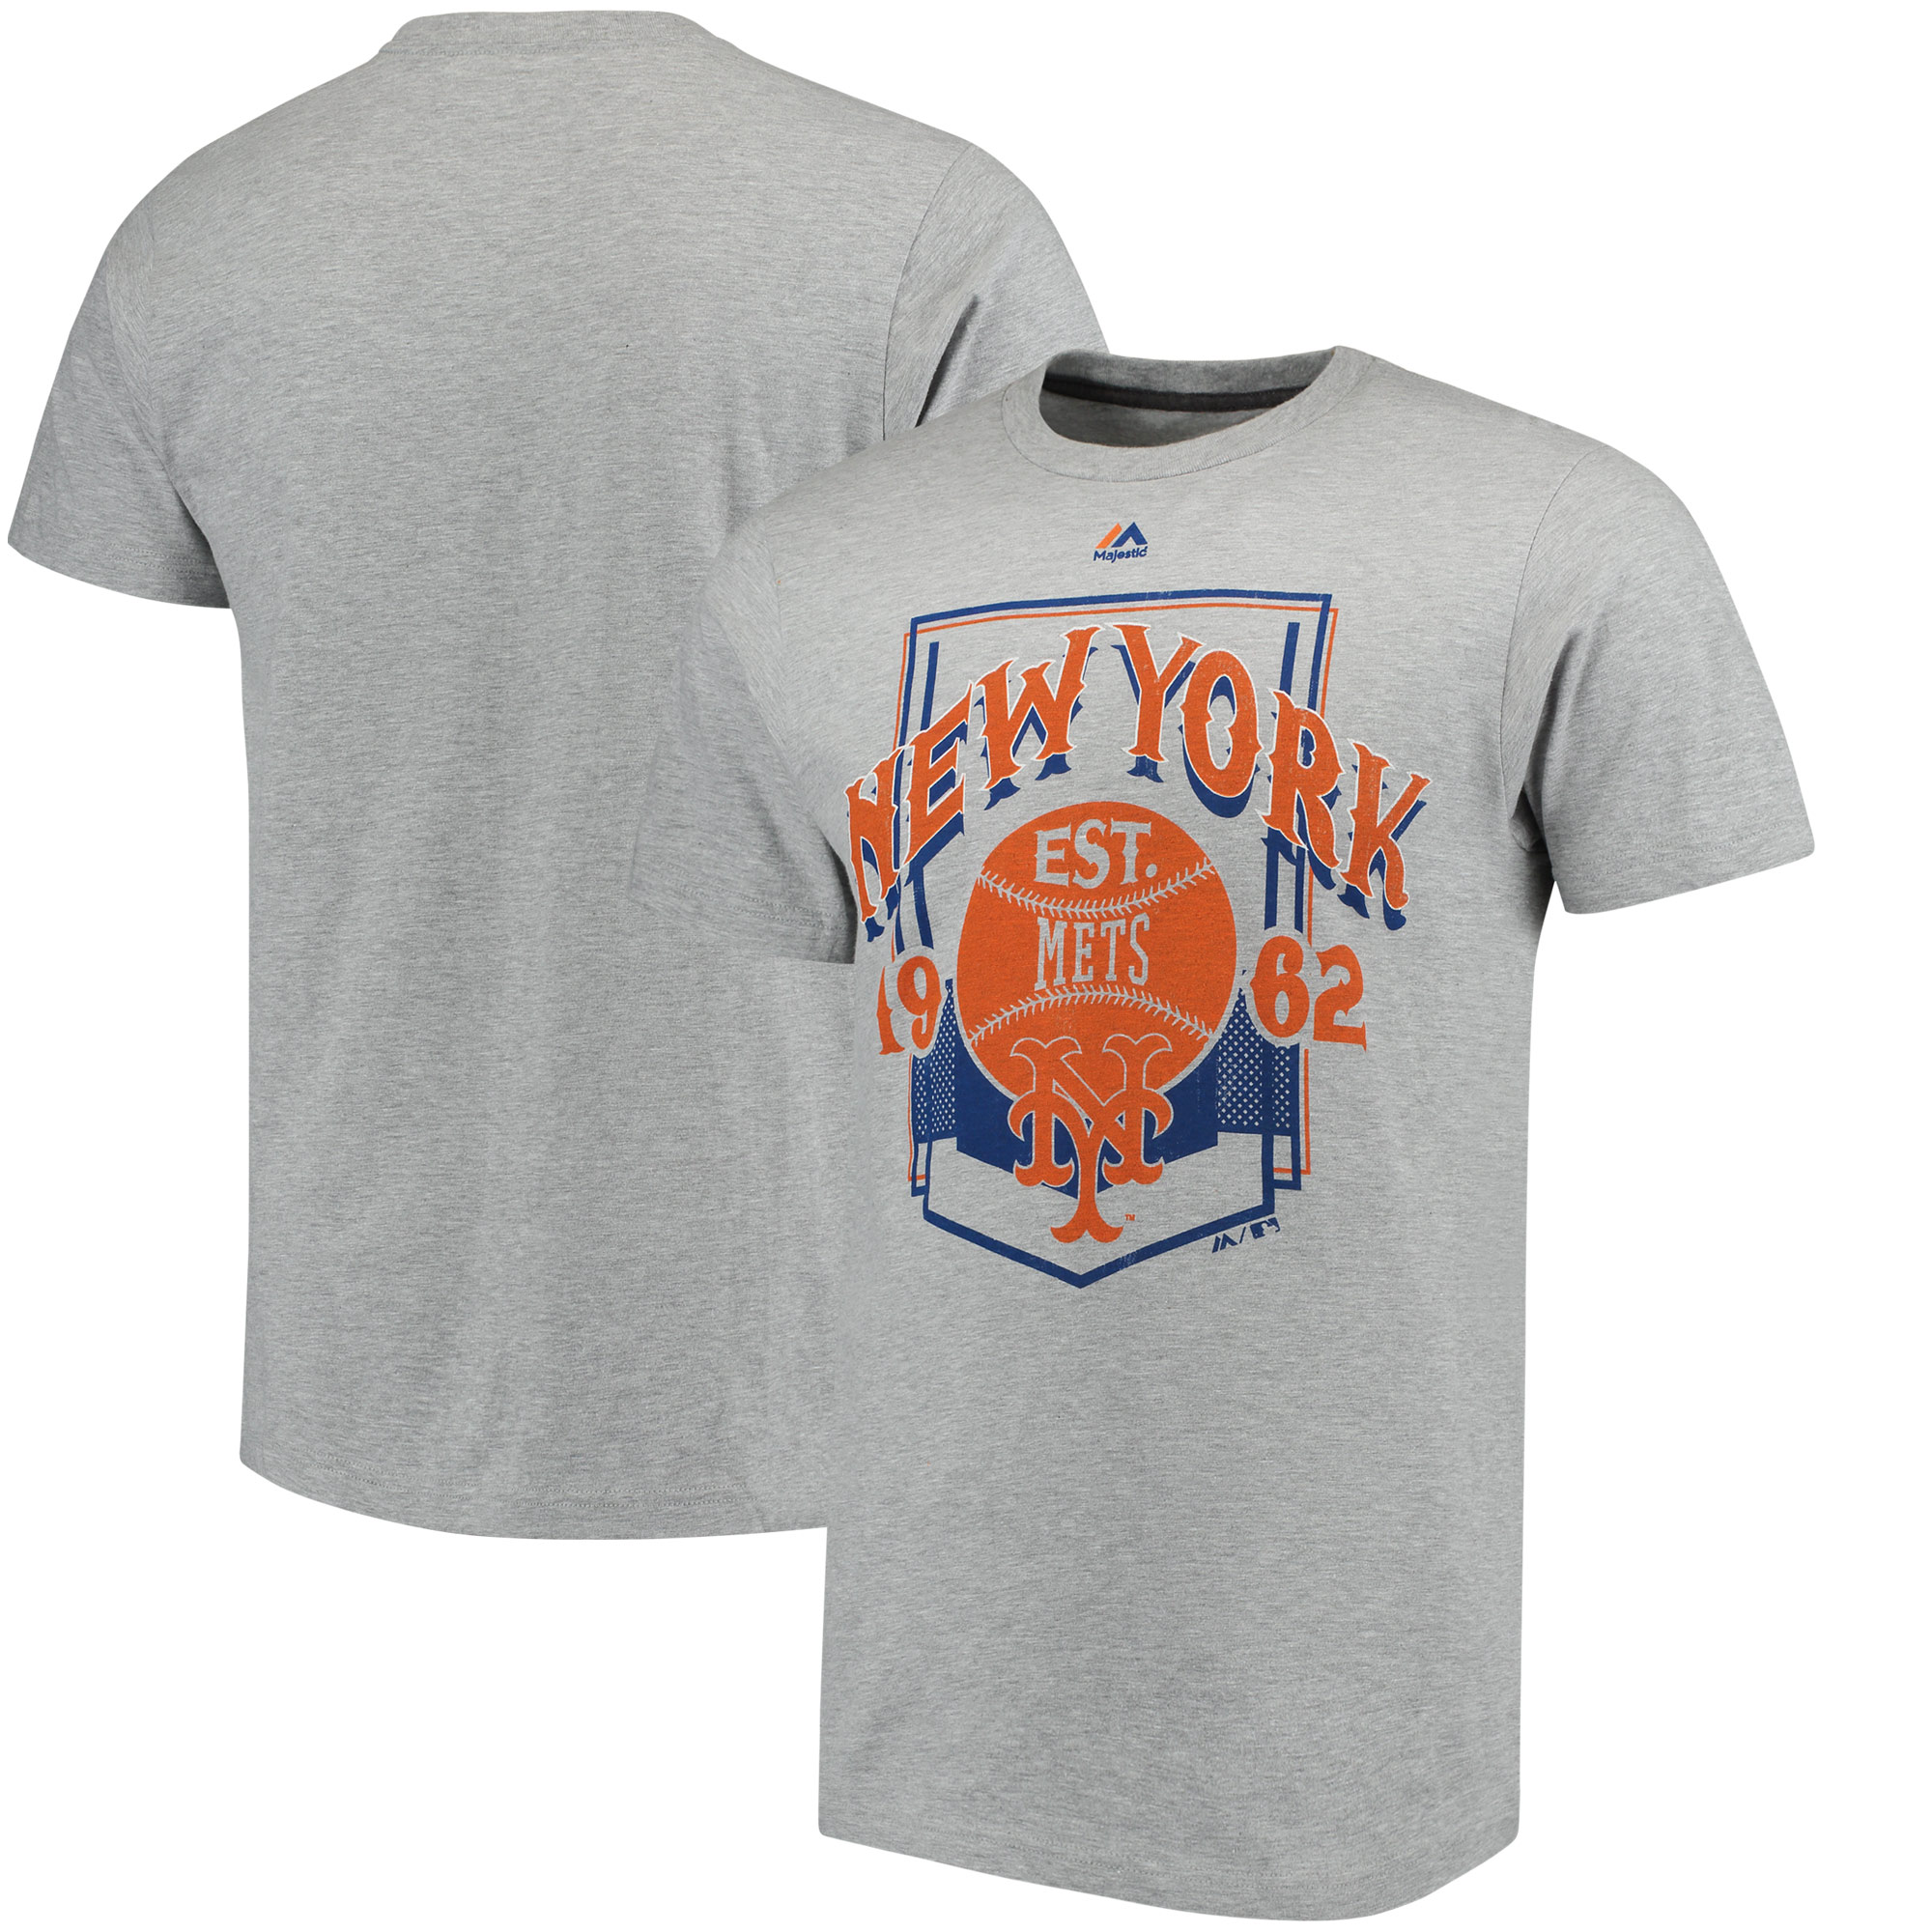 New York Mets Majestic Vintage Style T-Shirt - Gray